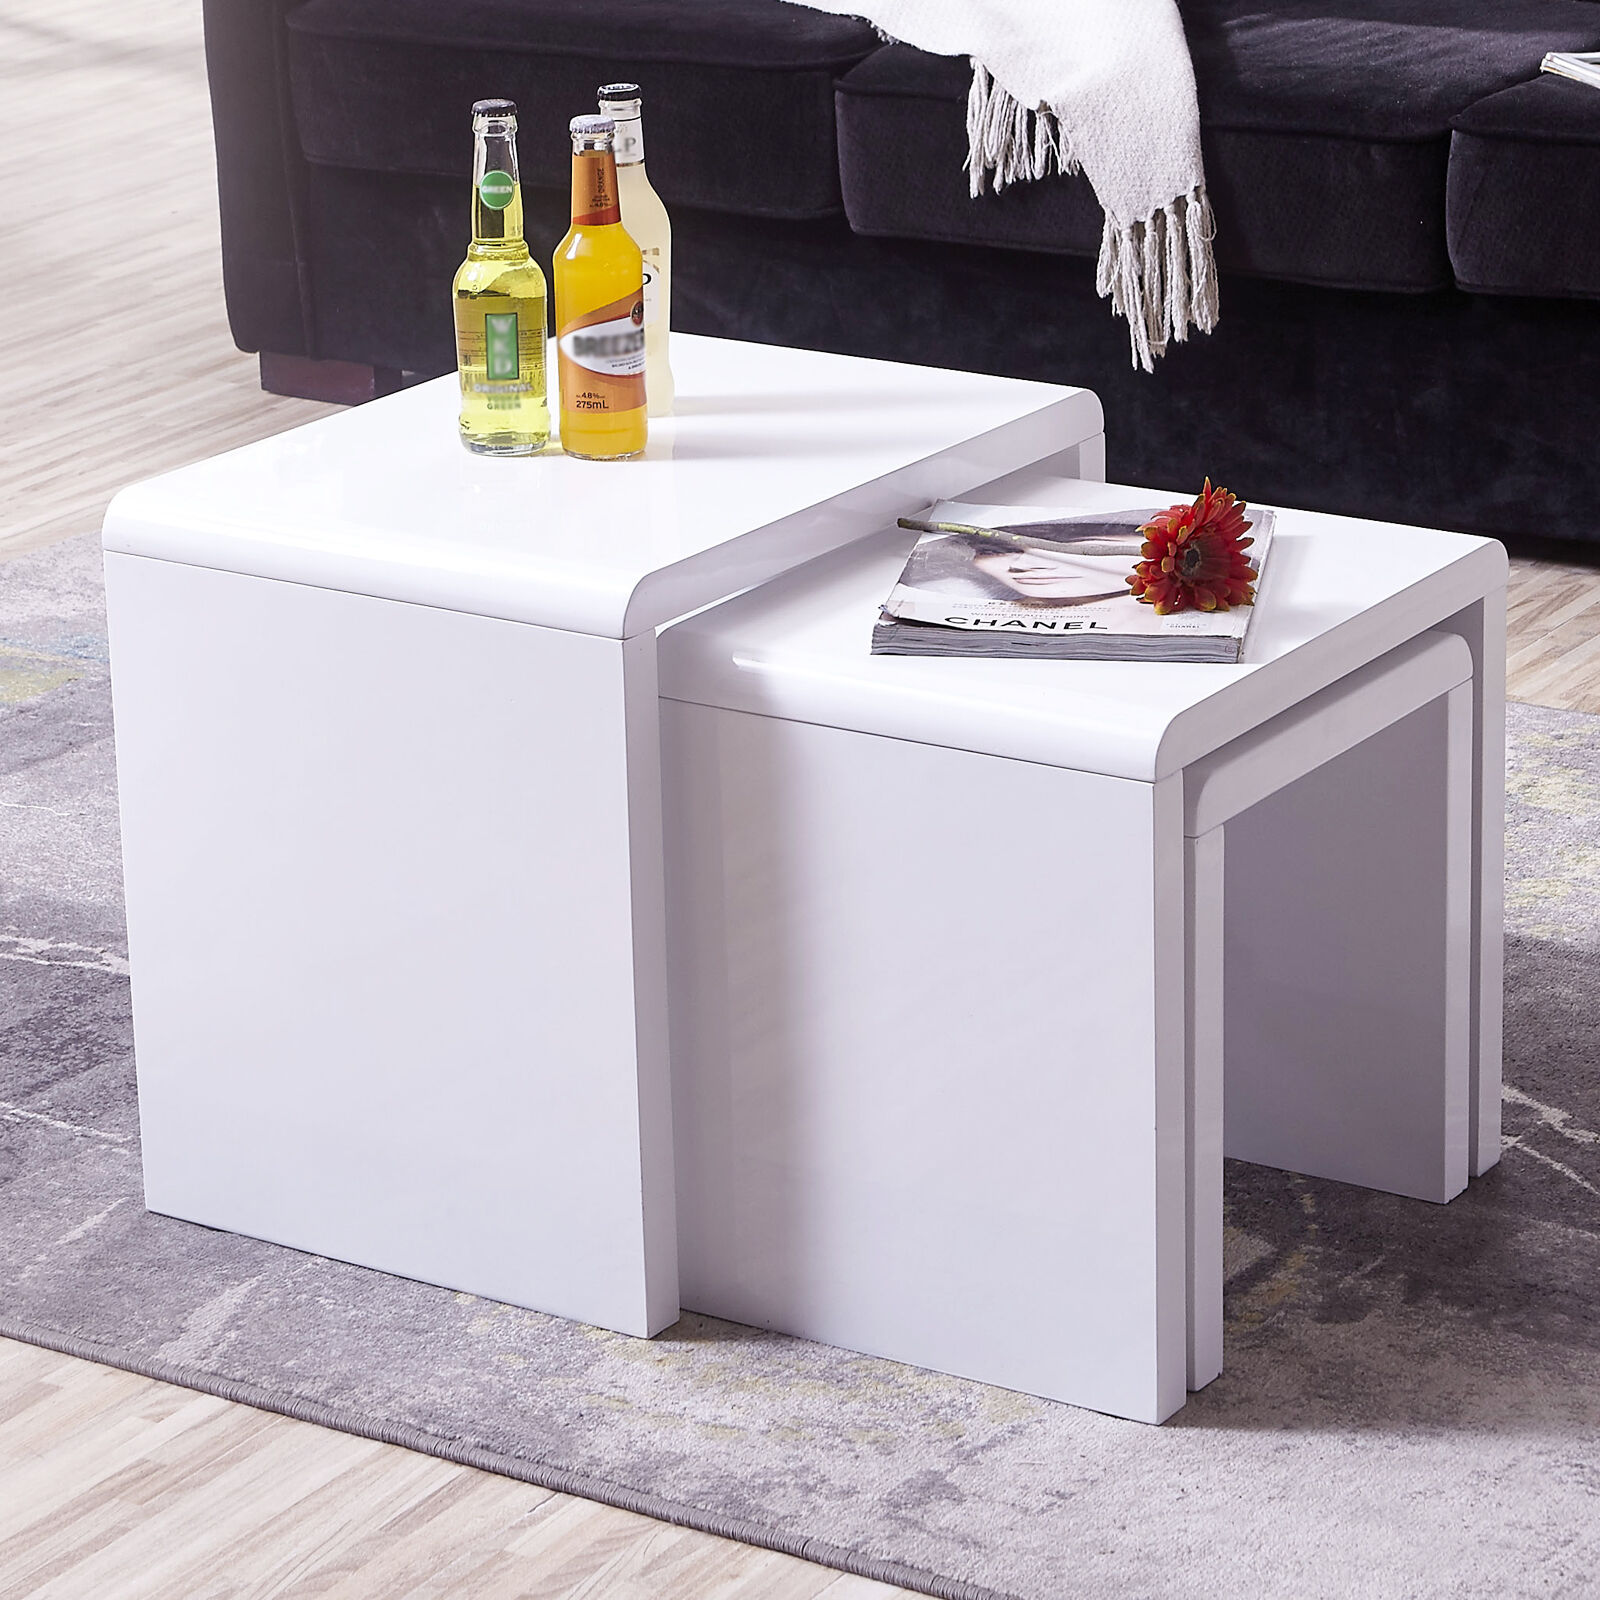 30 The Best White Gloss Coffee Tables: New Modern Design High Gloss White Nest Of 3 Coffee Table